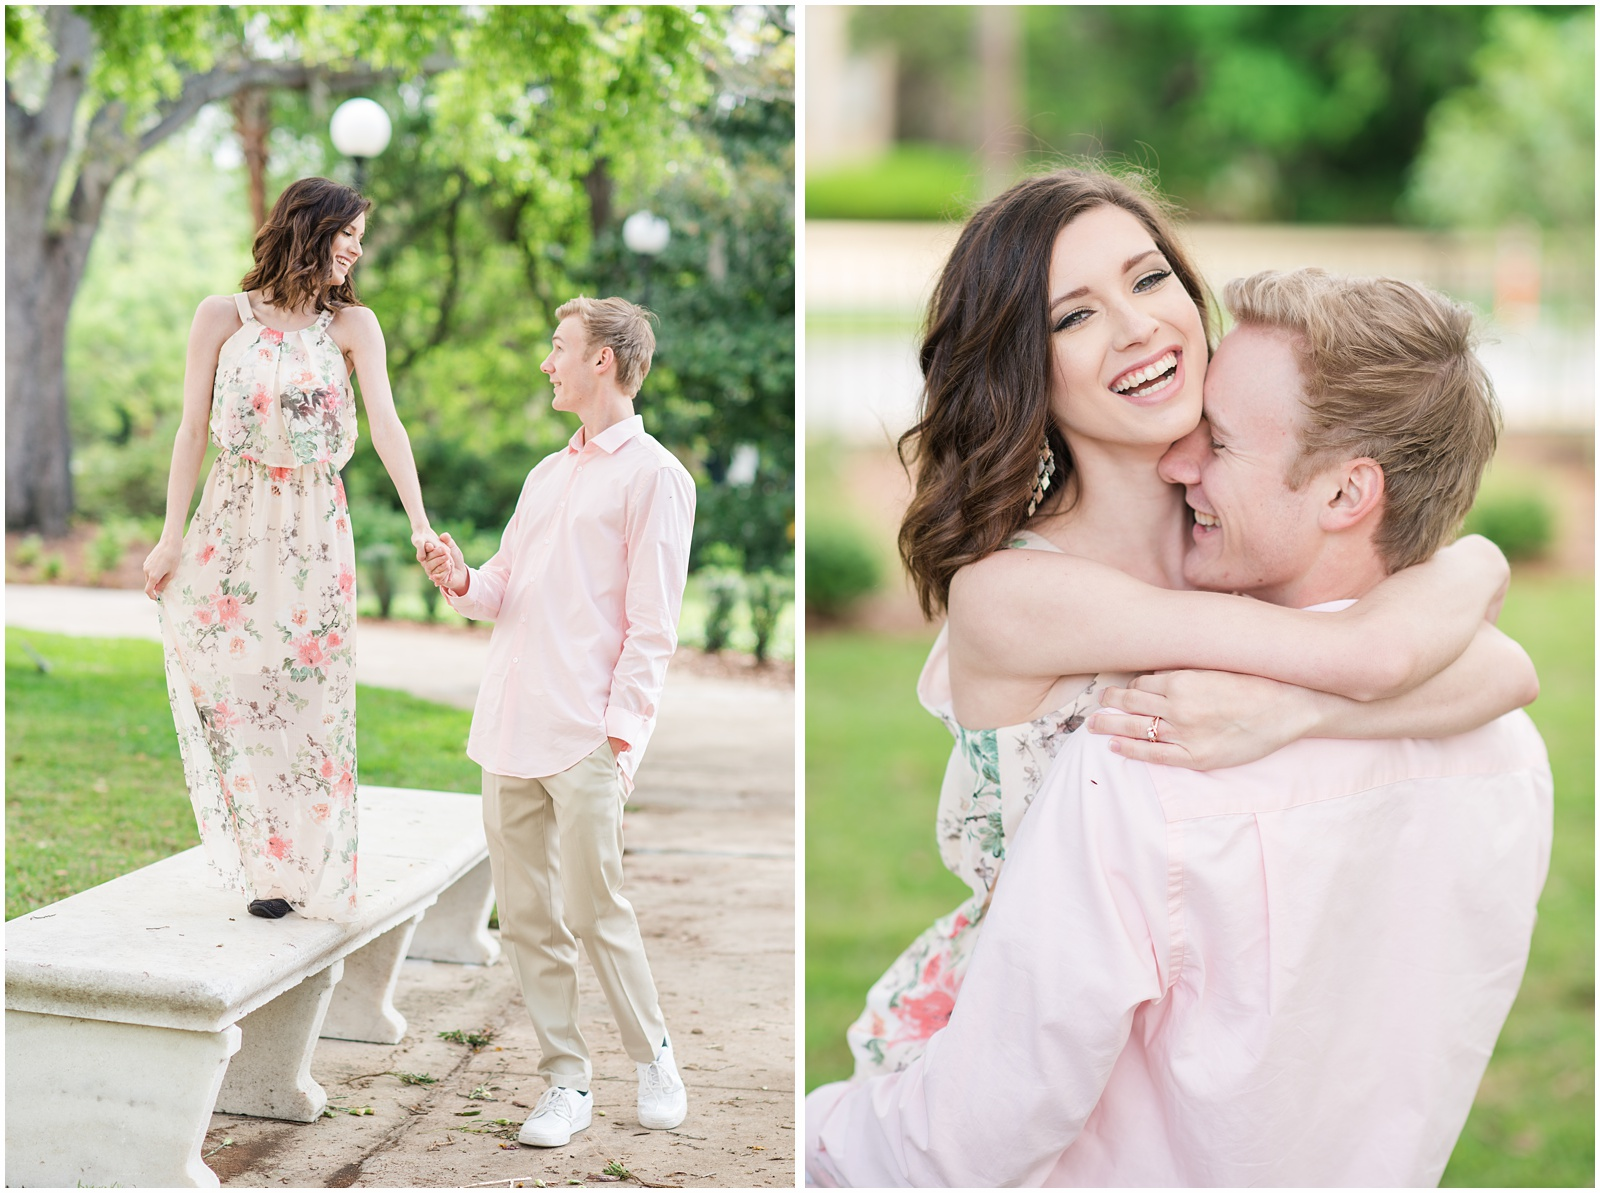 Jacksonville_Florida_Memorial Park_Engagement_Portraits_14.jpg